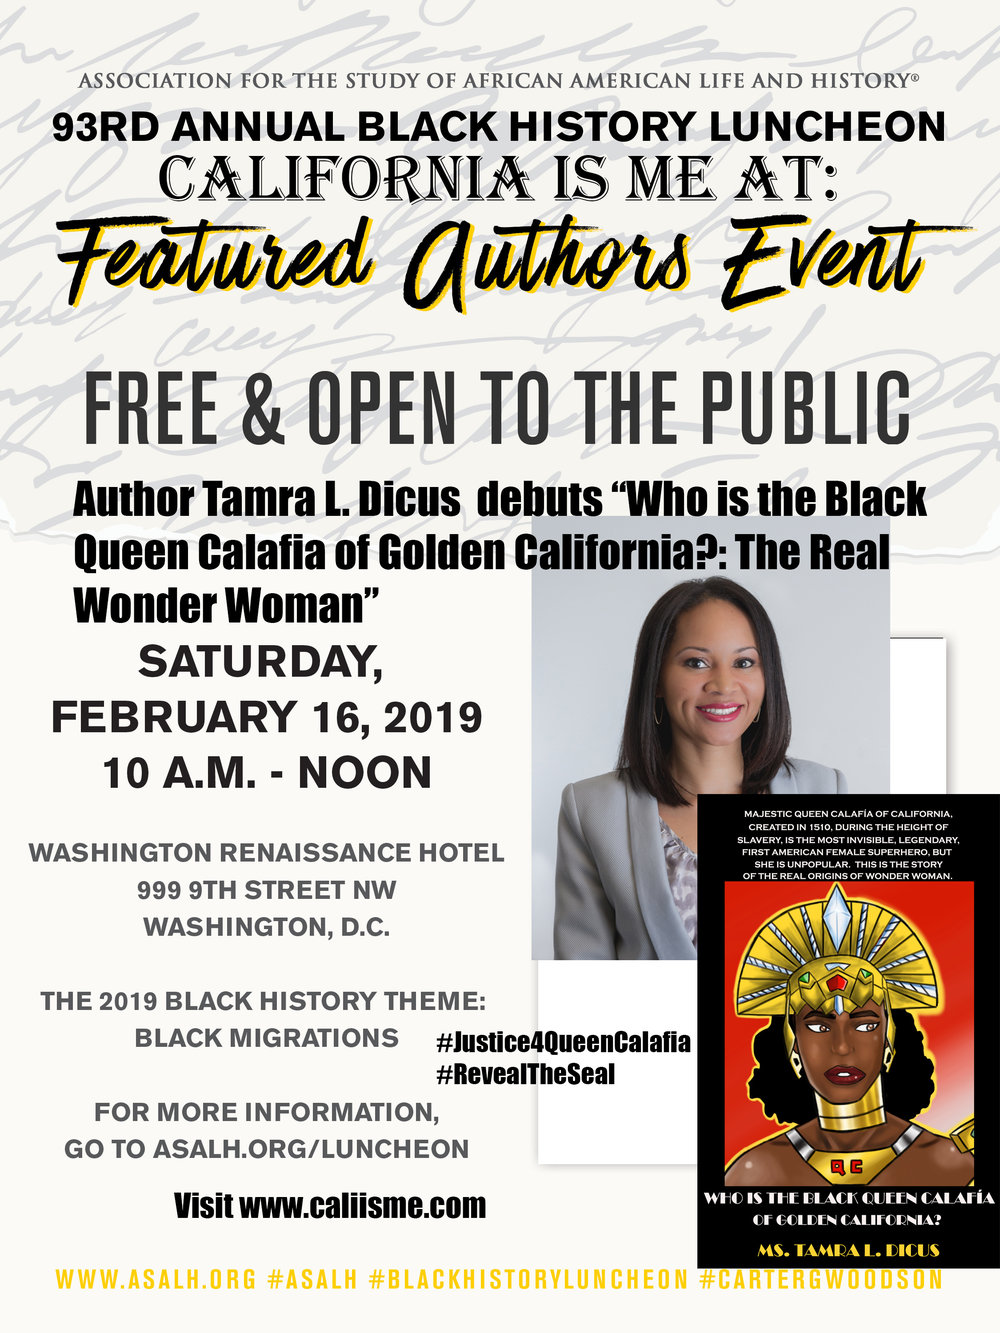 SavetheDateAuthorsEvent flyer Asalh Featured Authors event.jpg